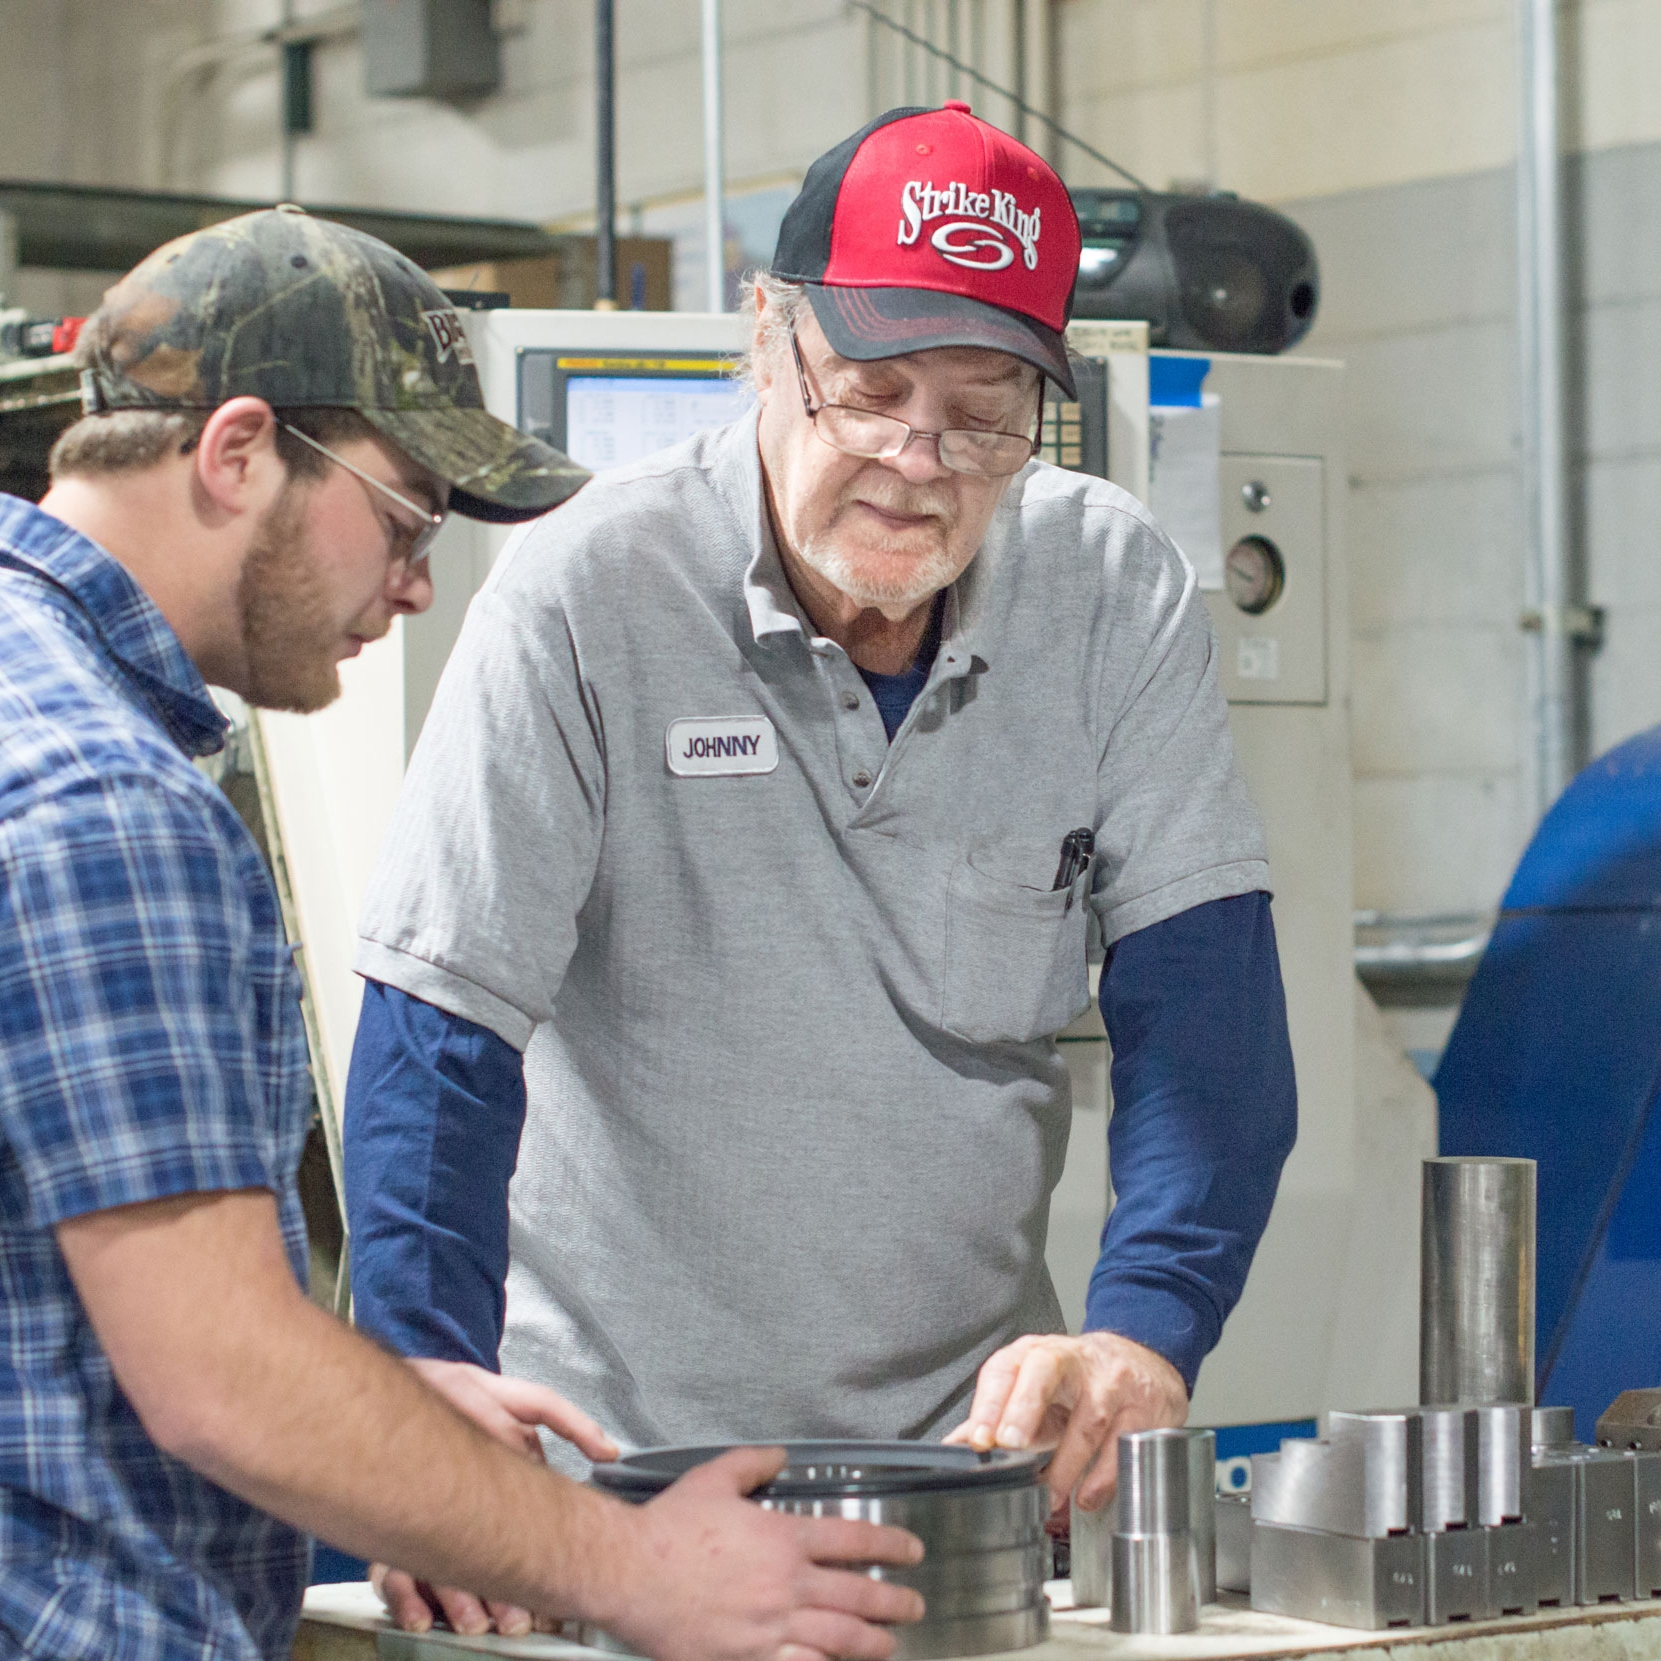 Johnny Copeland   Production Lead - 39 years of Machining experience.Johnny began his career with Cincinnati Milicron as a machinist.Johnny progressed to leadership roles at Cincinnati Milicron and later moved to leadership roles at Burnstein Von Seelen. Johnny joined 2 years ago bringing engineering and design expertise along with CNC programing and drafting skills to the team.Contact Today864-547-8373johnny.copeland@centerlinees.com